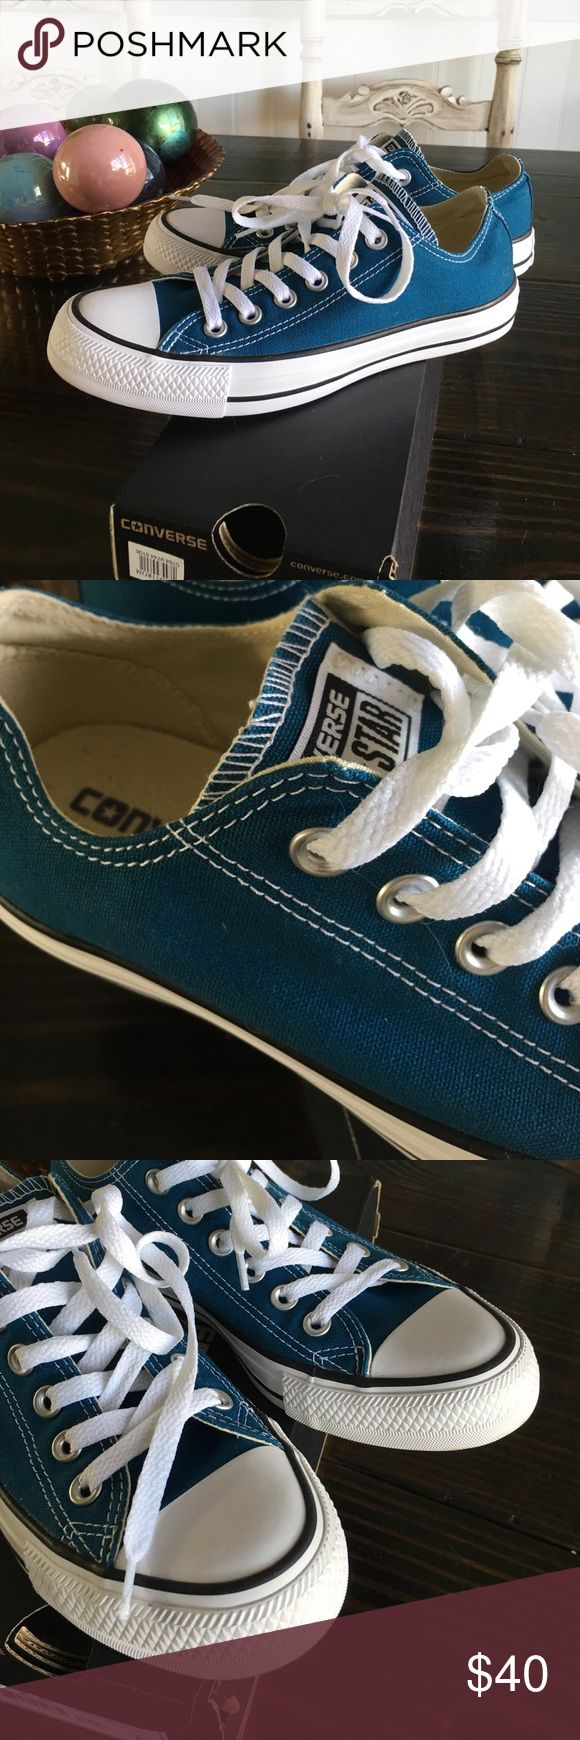 Teal Converse Excellent Condition Size 7 teal converse. In excellent condition. I am a size 8 and these fit me perfectly. Shipped without box Converse Shoes Sneakers